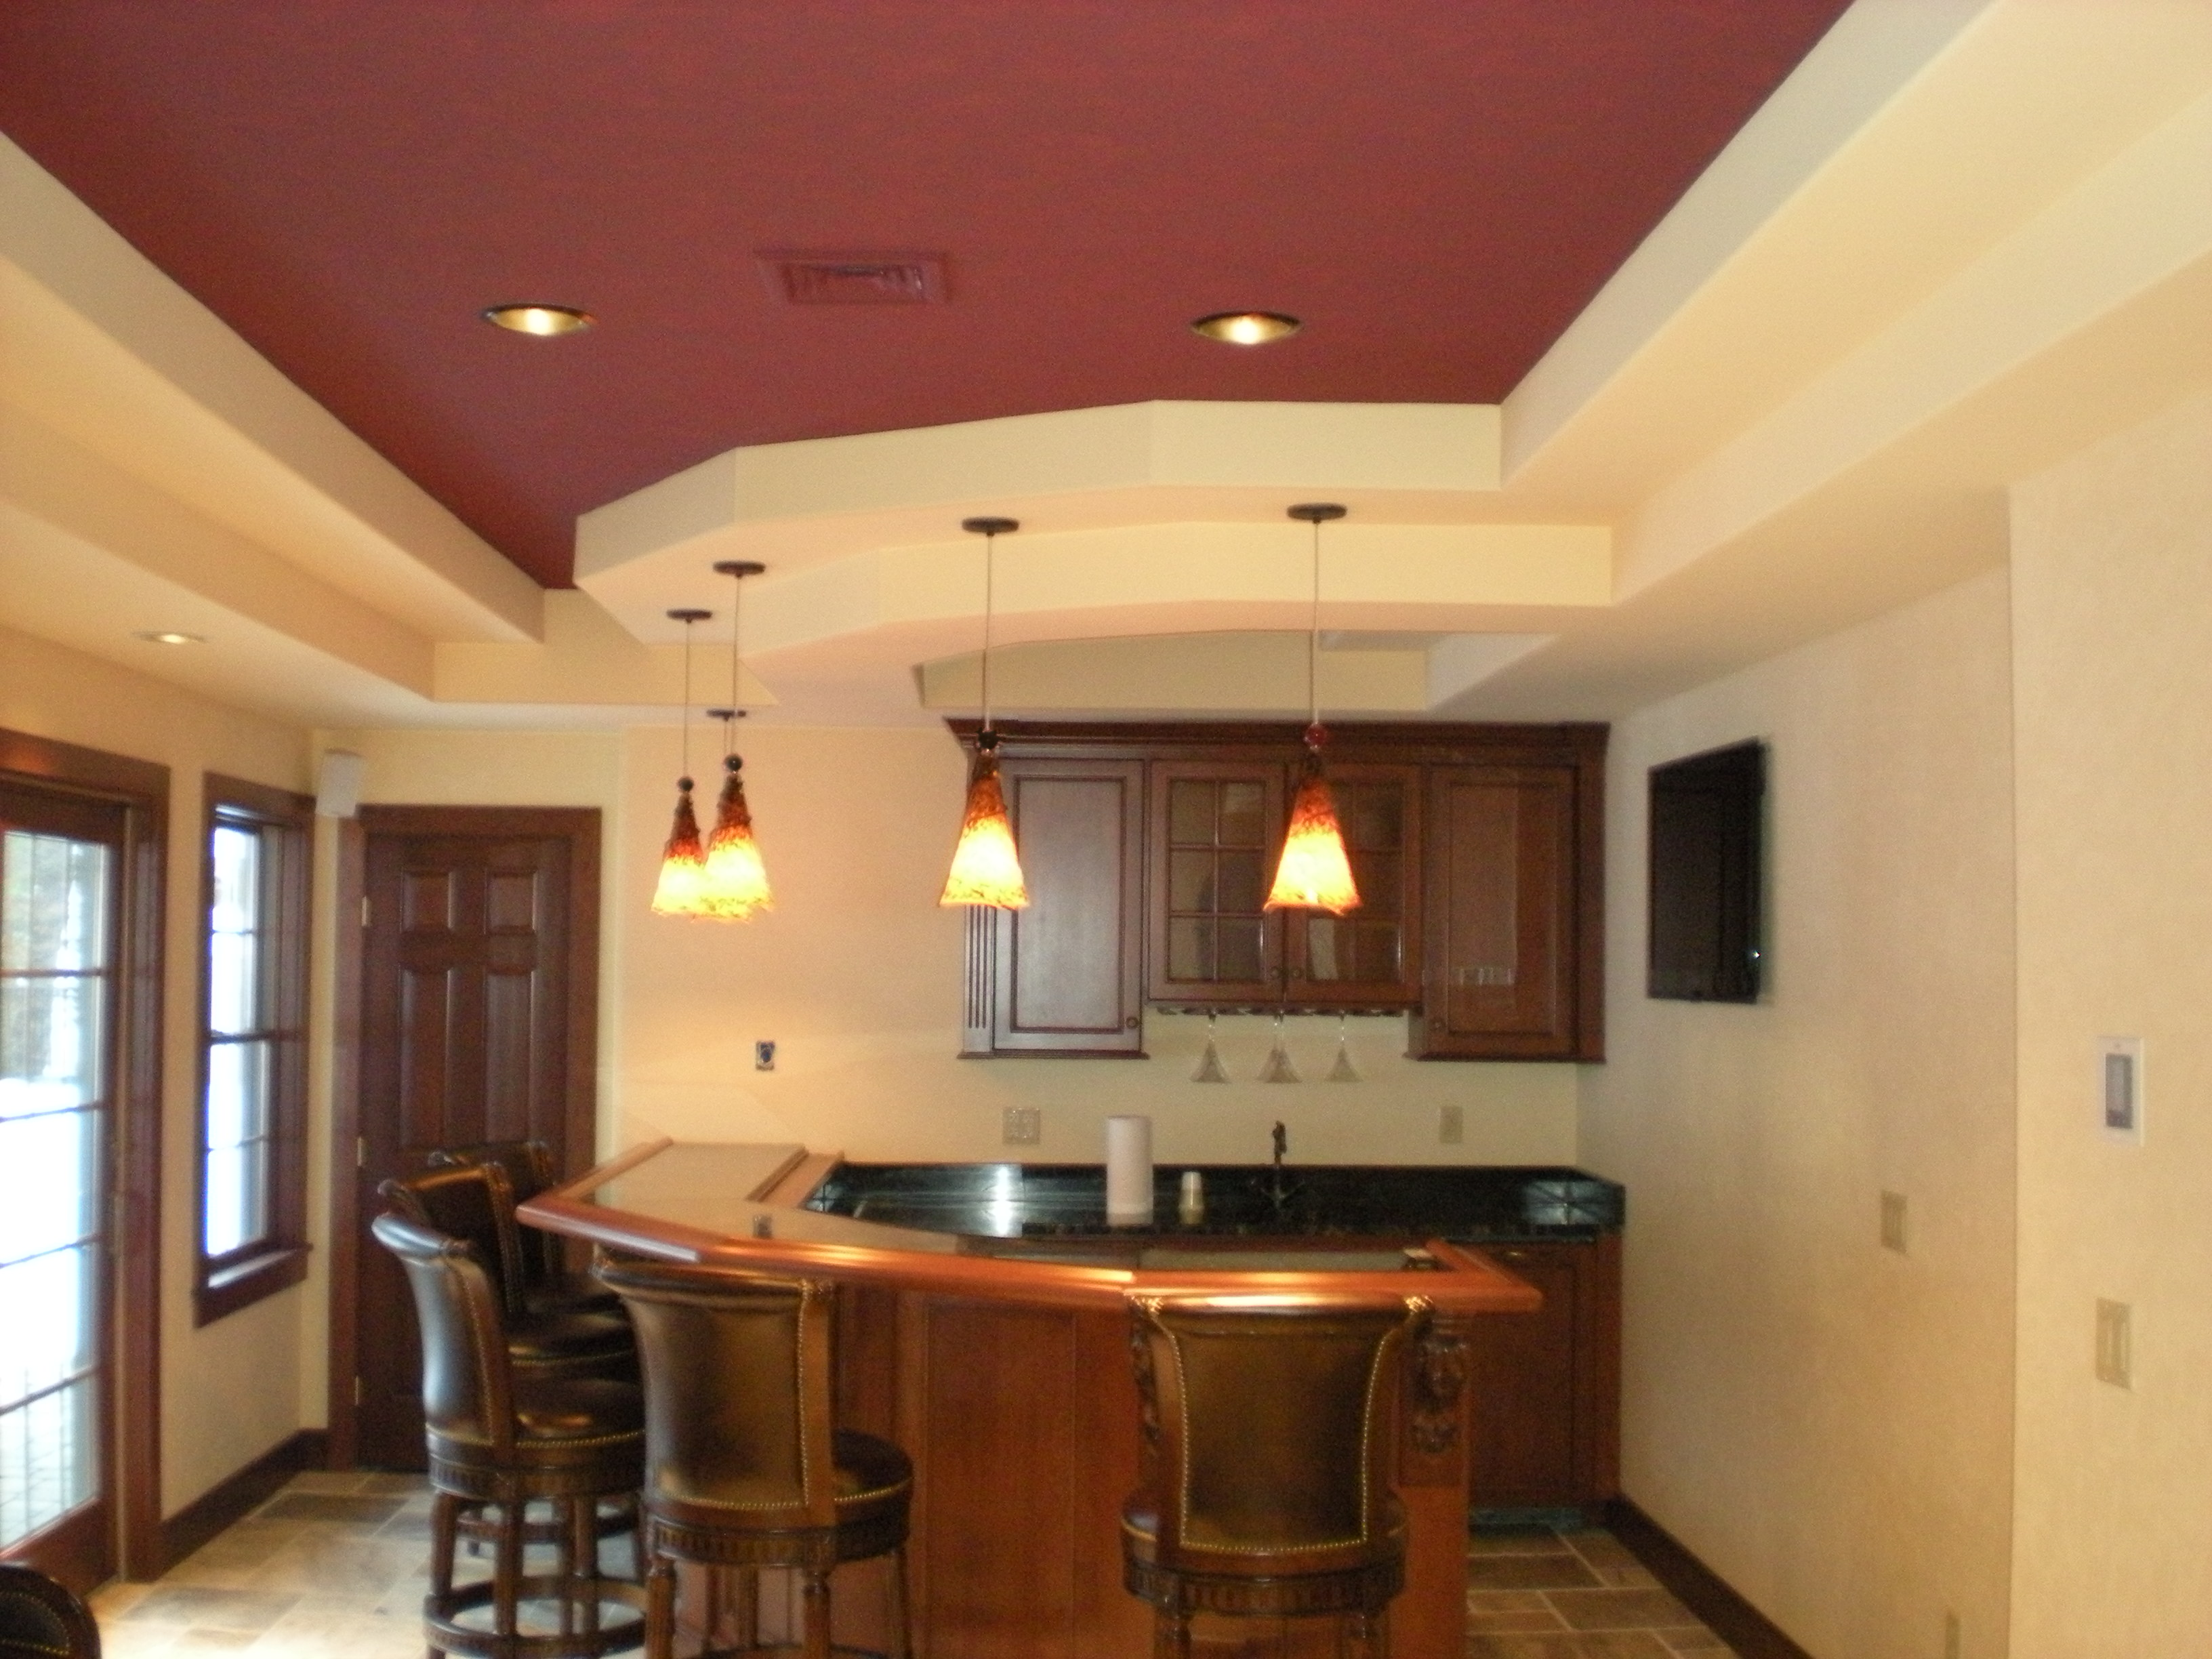 Basement Design Services image may contain indoor Basement Finish Design Photos